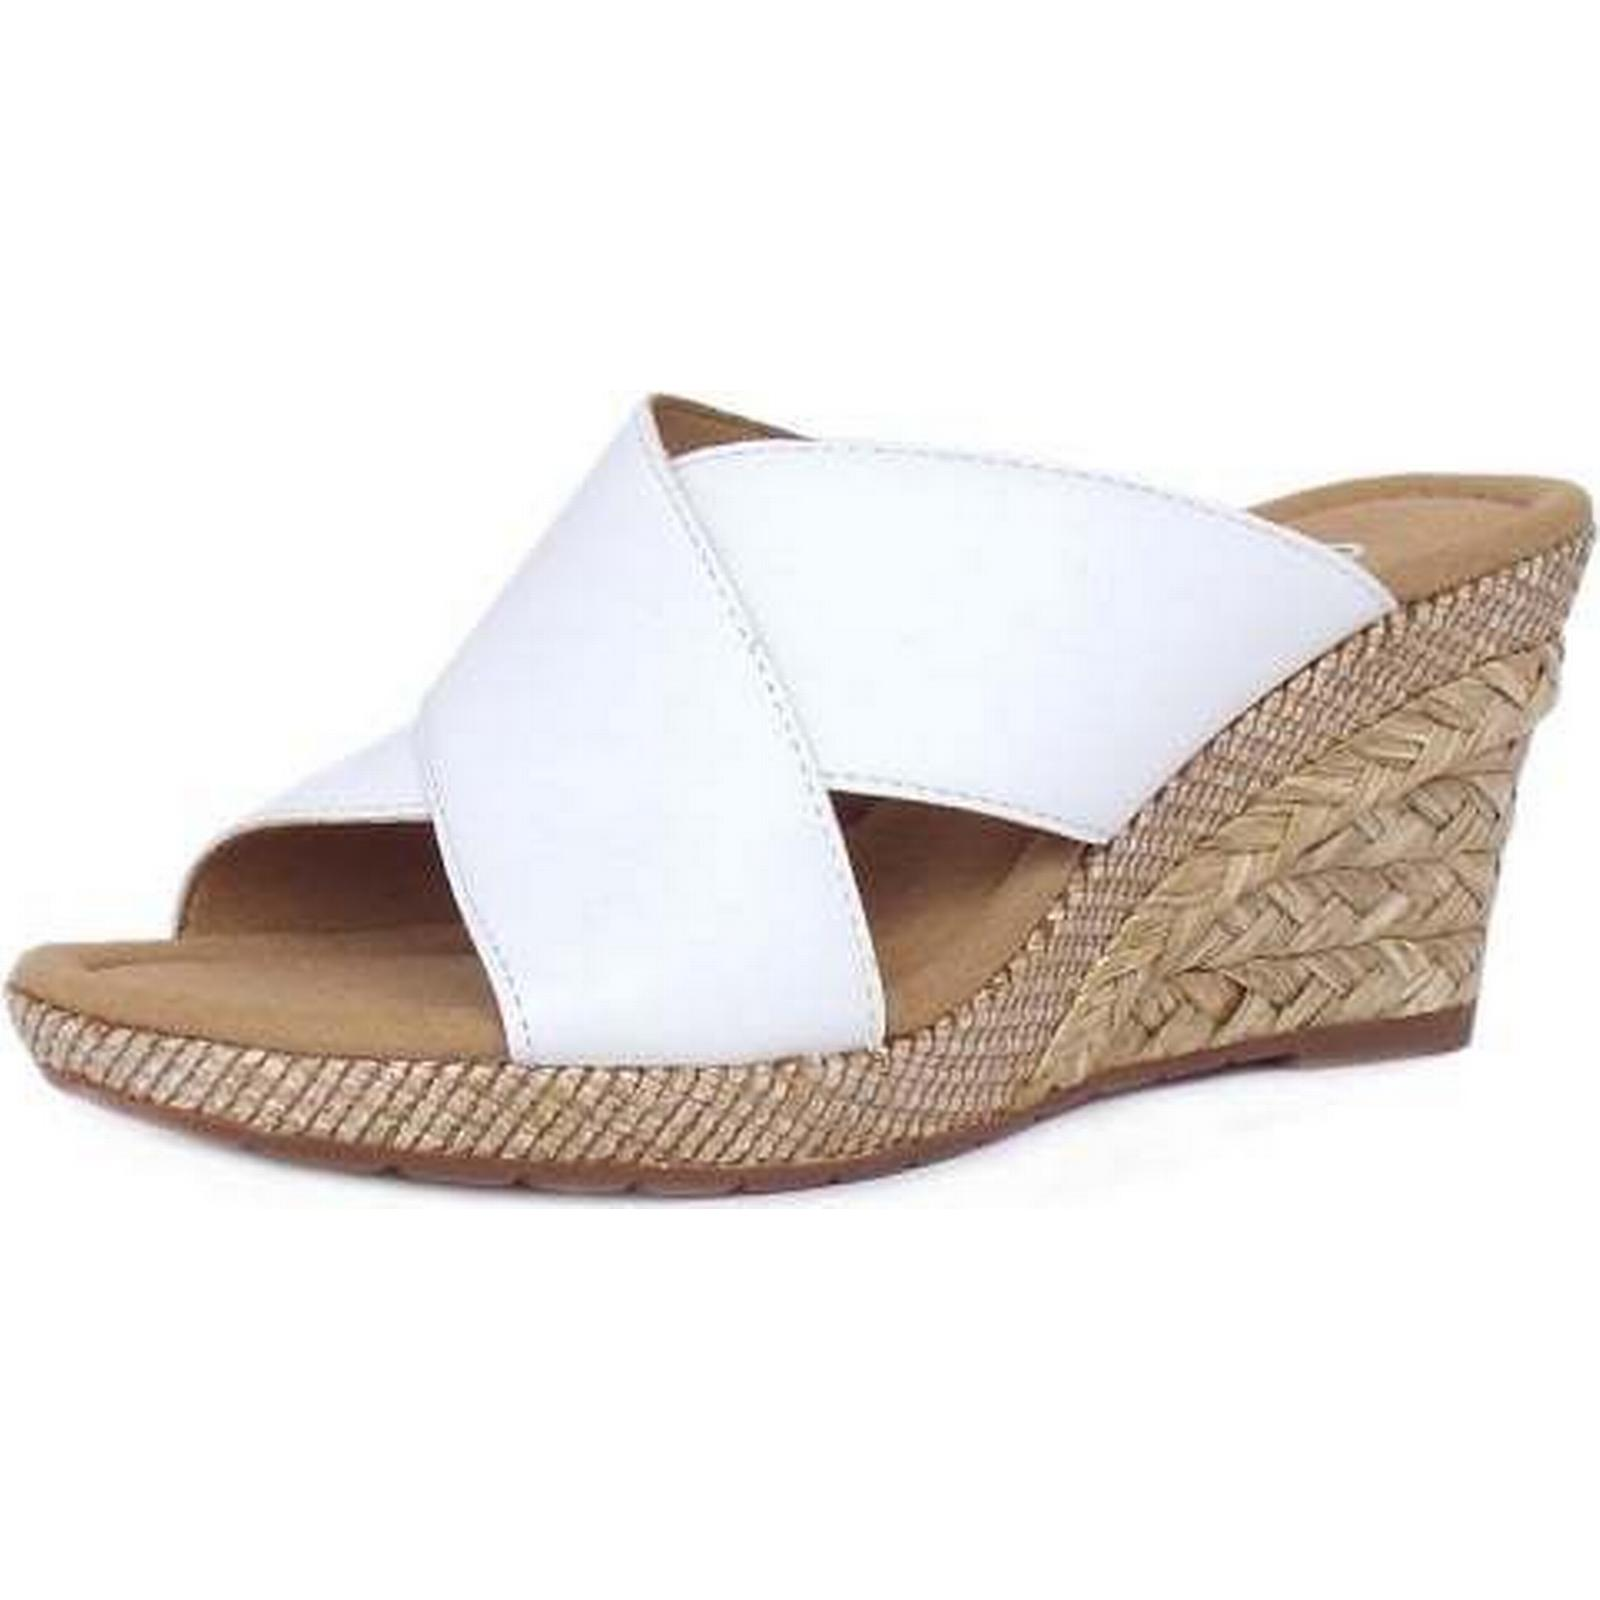 Gabor PURPOSE GABOR WEDGE SANDALS 62 62 SANDALS 829 50 Size: 5, Colour: WHITE 186d2a